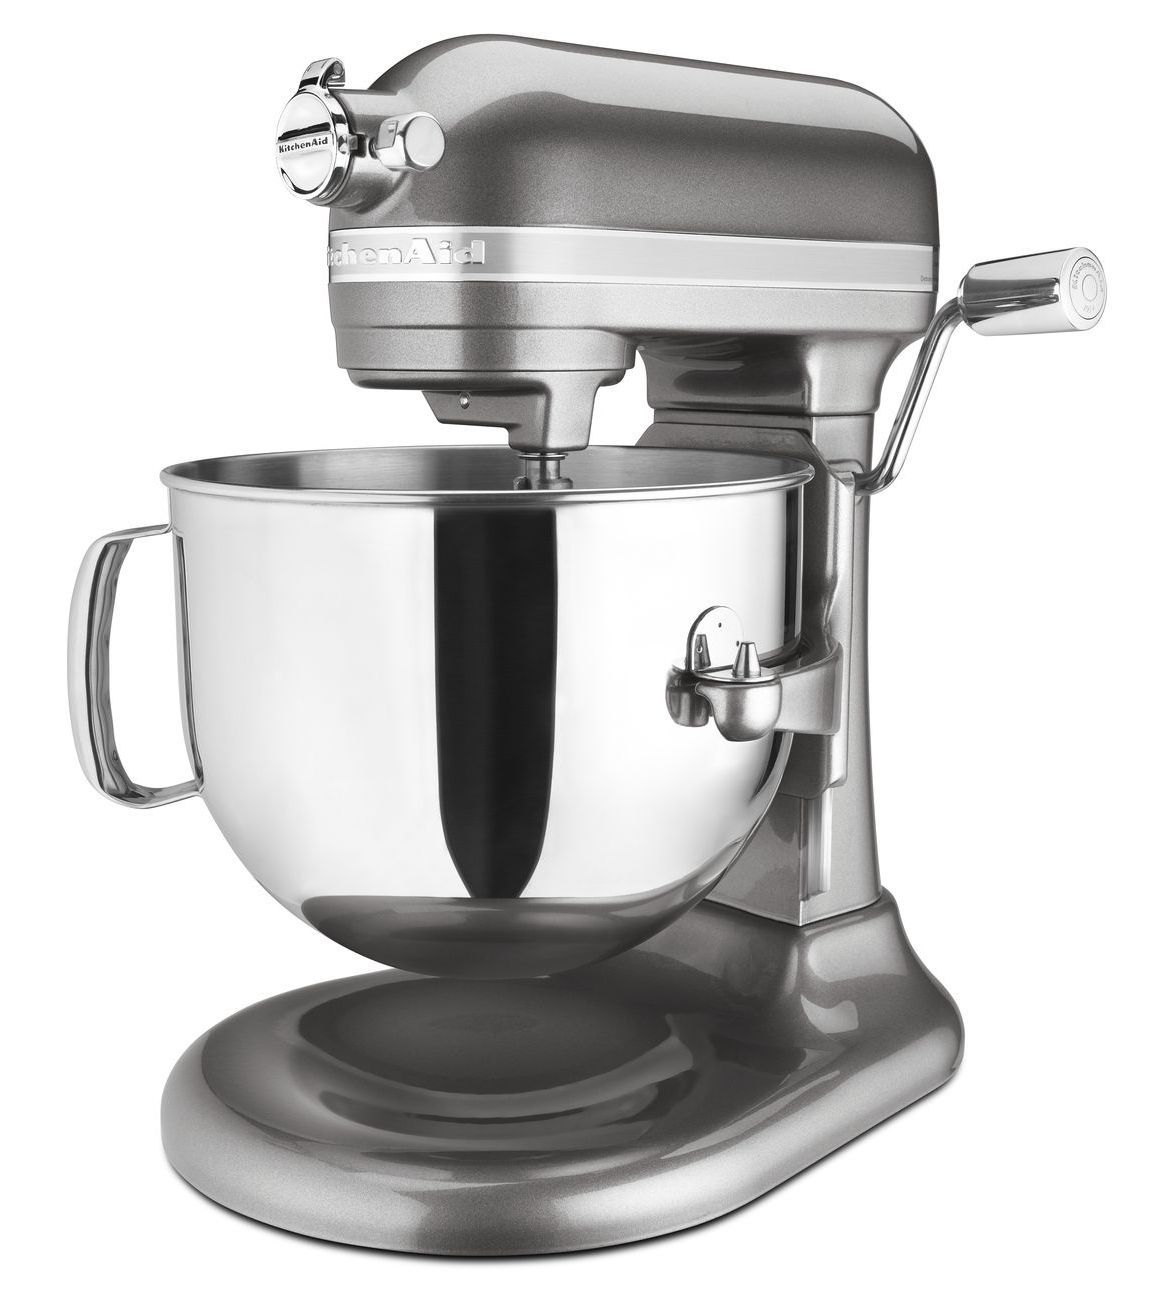 Fuel Your Culinary Pion With The Revolutionary Kitchenaid Candy Le Red Bowl Lift Stand Mixer Pro Line Series 7 Quart